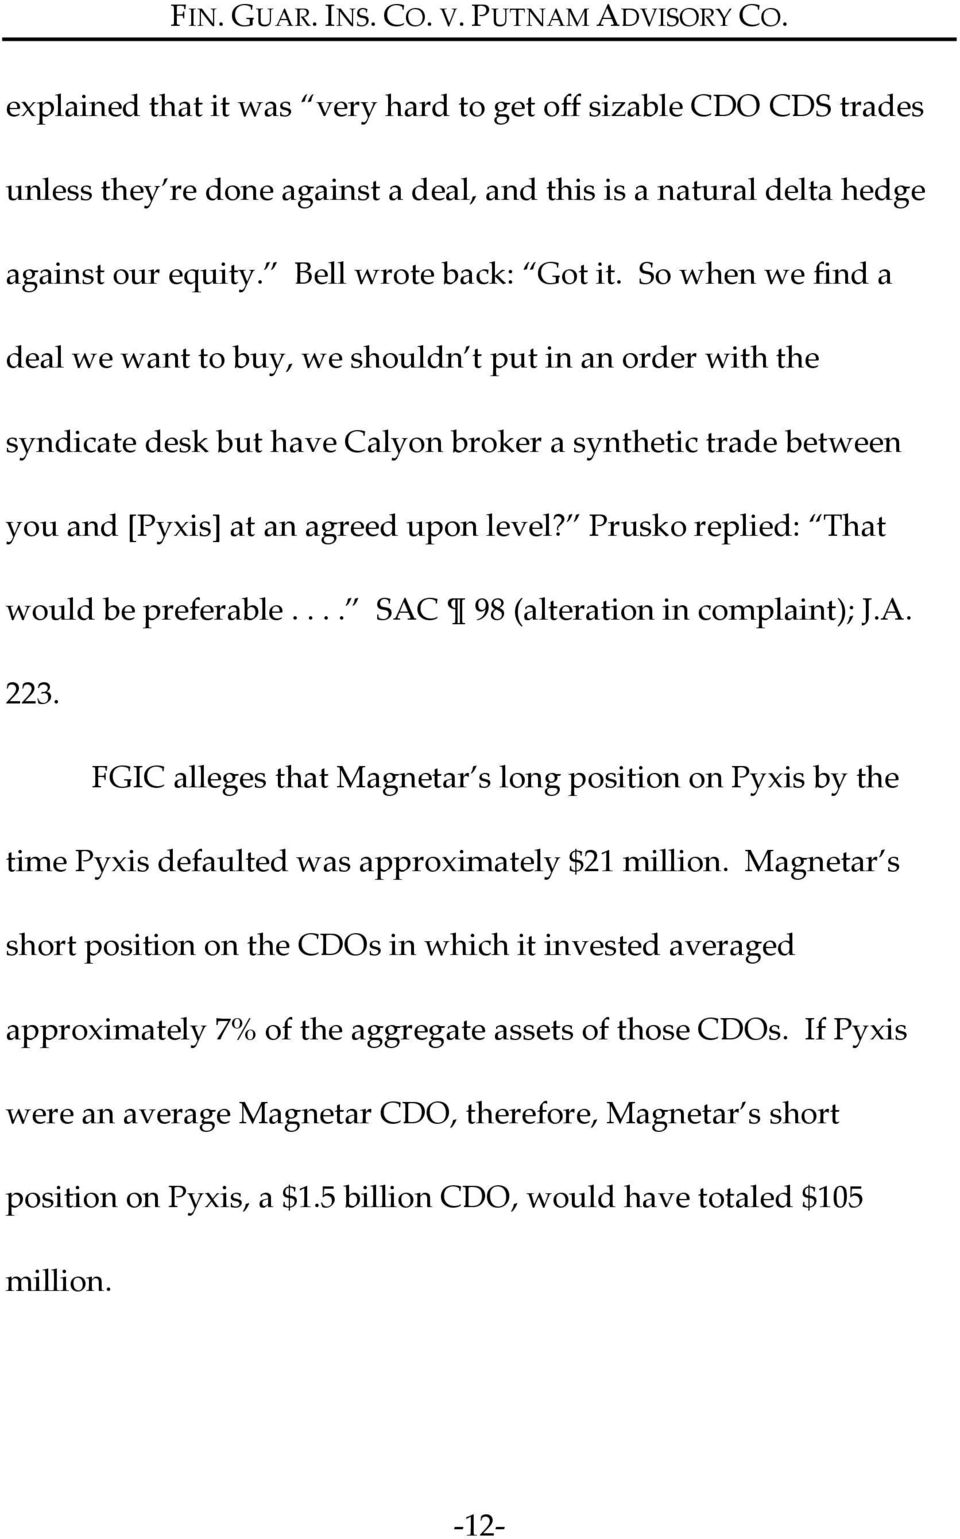 Prusko replied: That would be preferable.... SAC 98 (alteration in complaint); J.A. 223. FGIC alleges that Magnetar s long position on Pyxis by the time Pyxis defaulted was approximately $21 million.